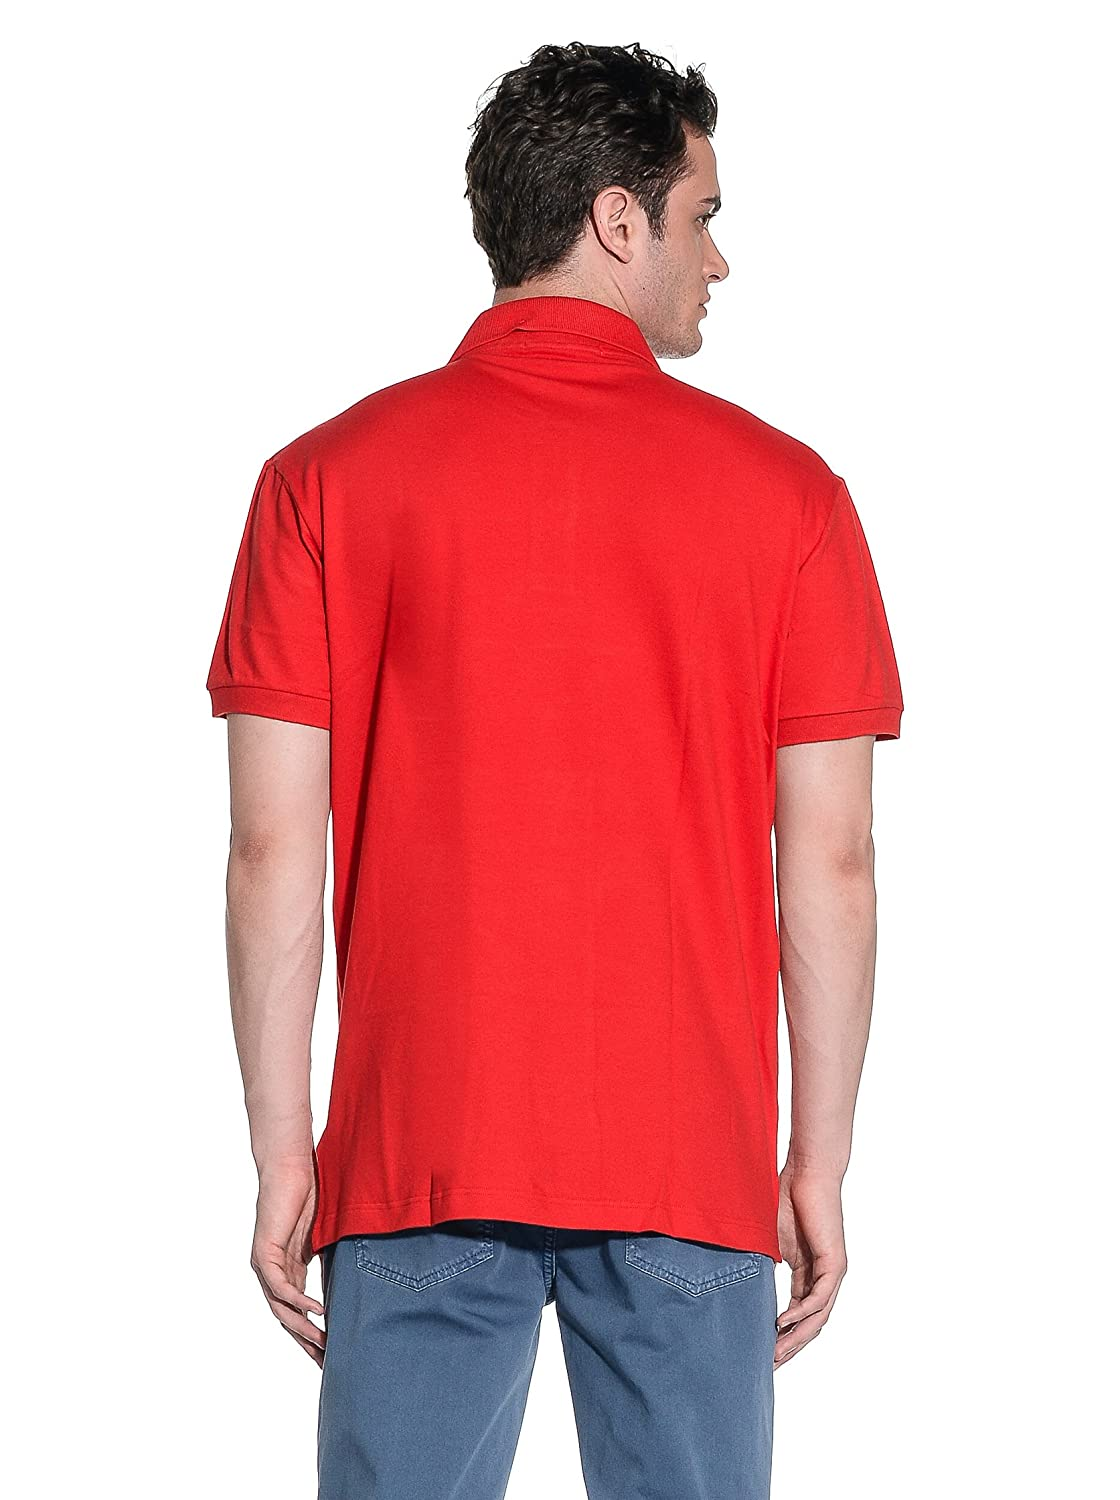 Fred Perry Polo Rojo XL (UK 44): Amazon.es: Ropa y accesorios